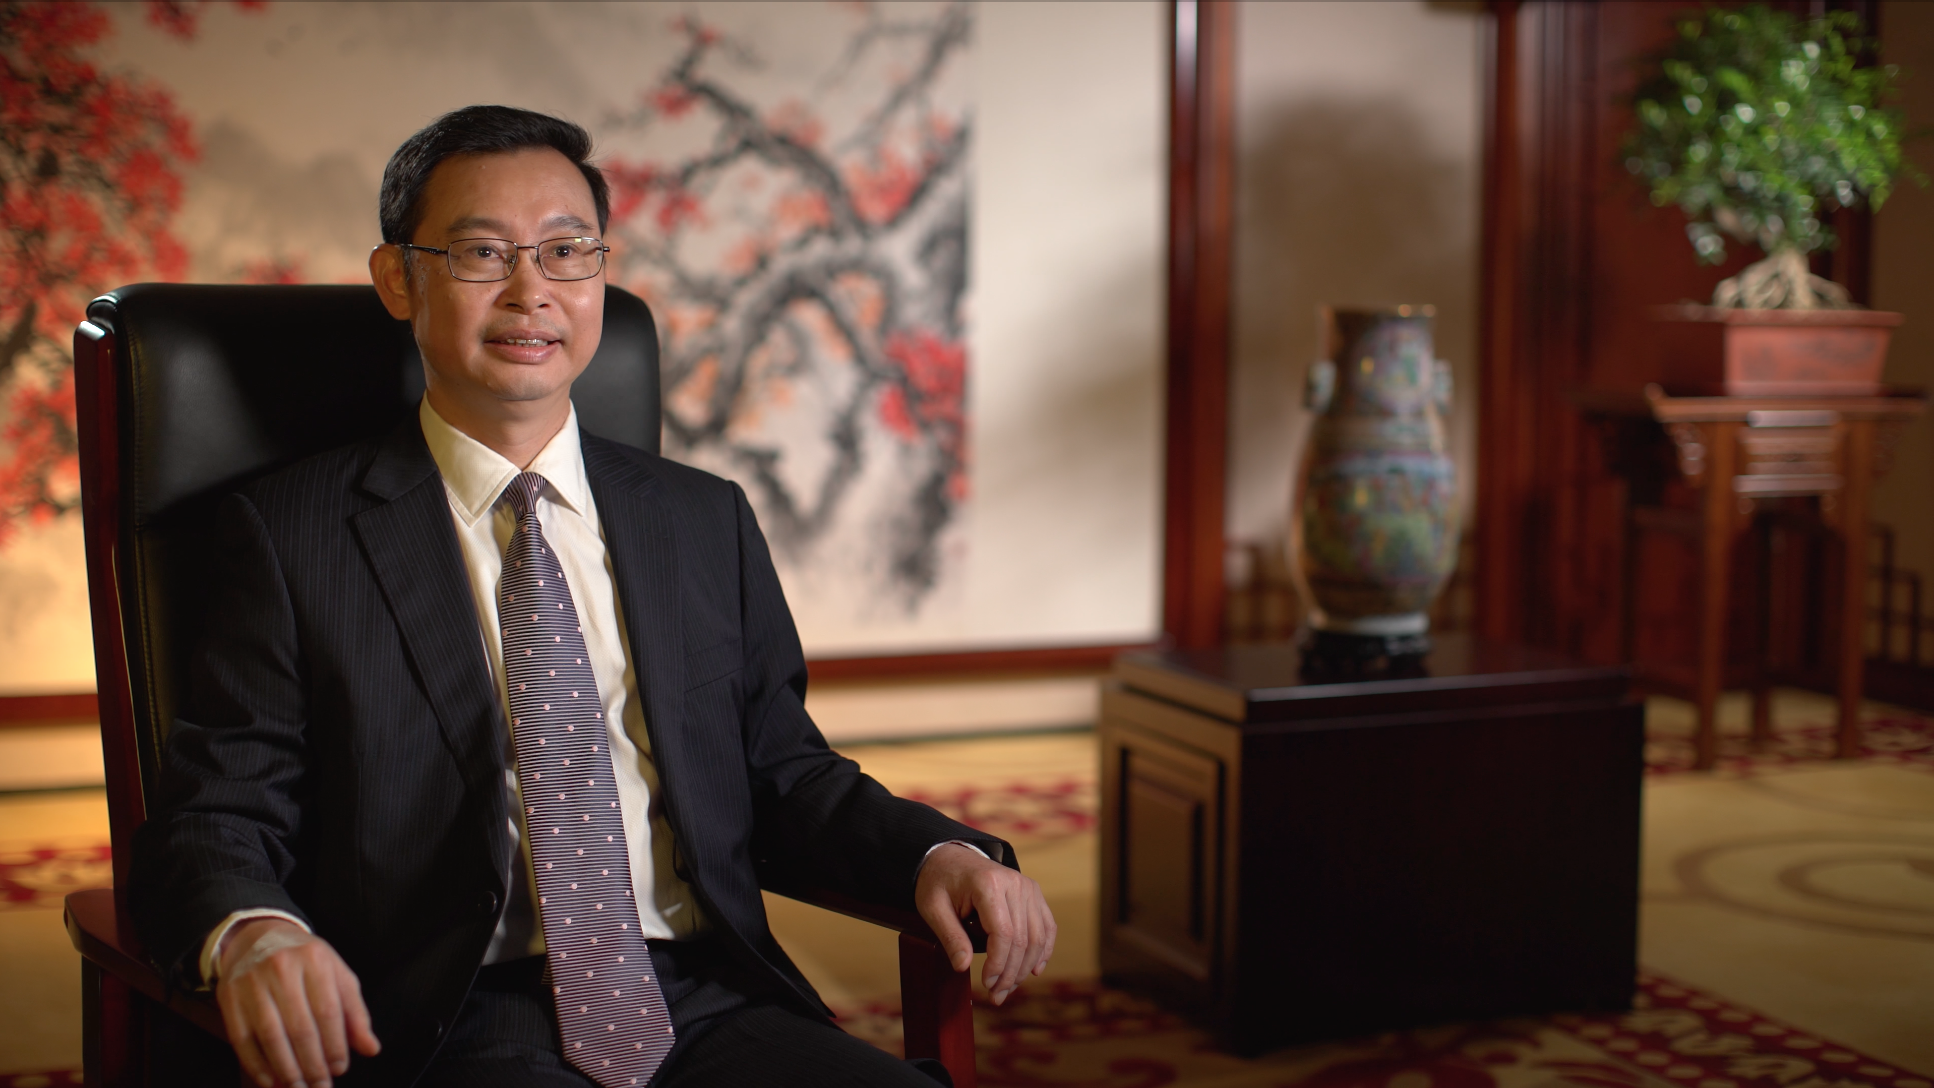 Mr. Wen was given a CEO-style desk chair, and the camera looked up at him ever so slightly.